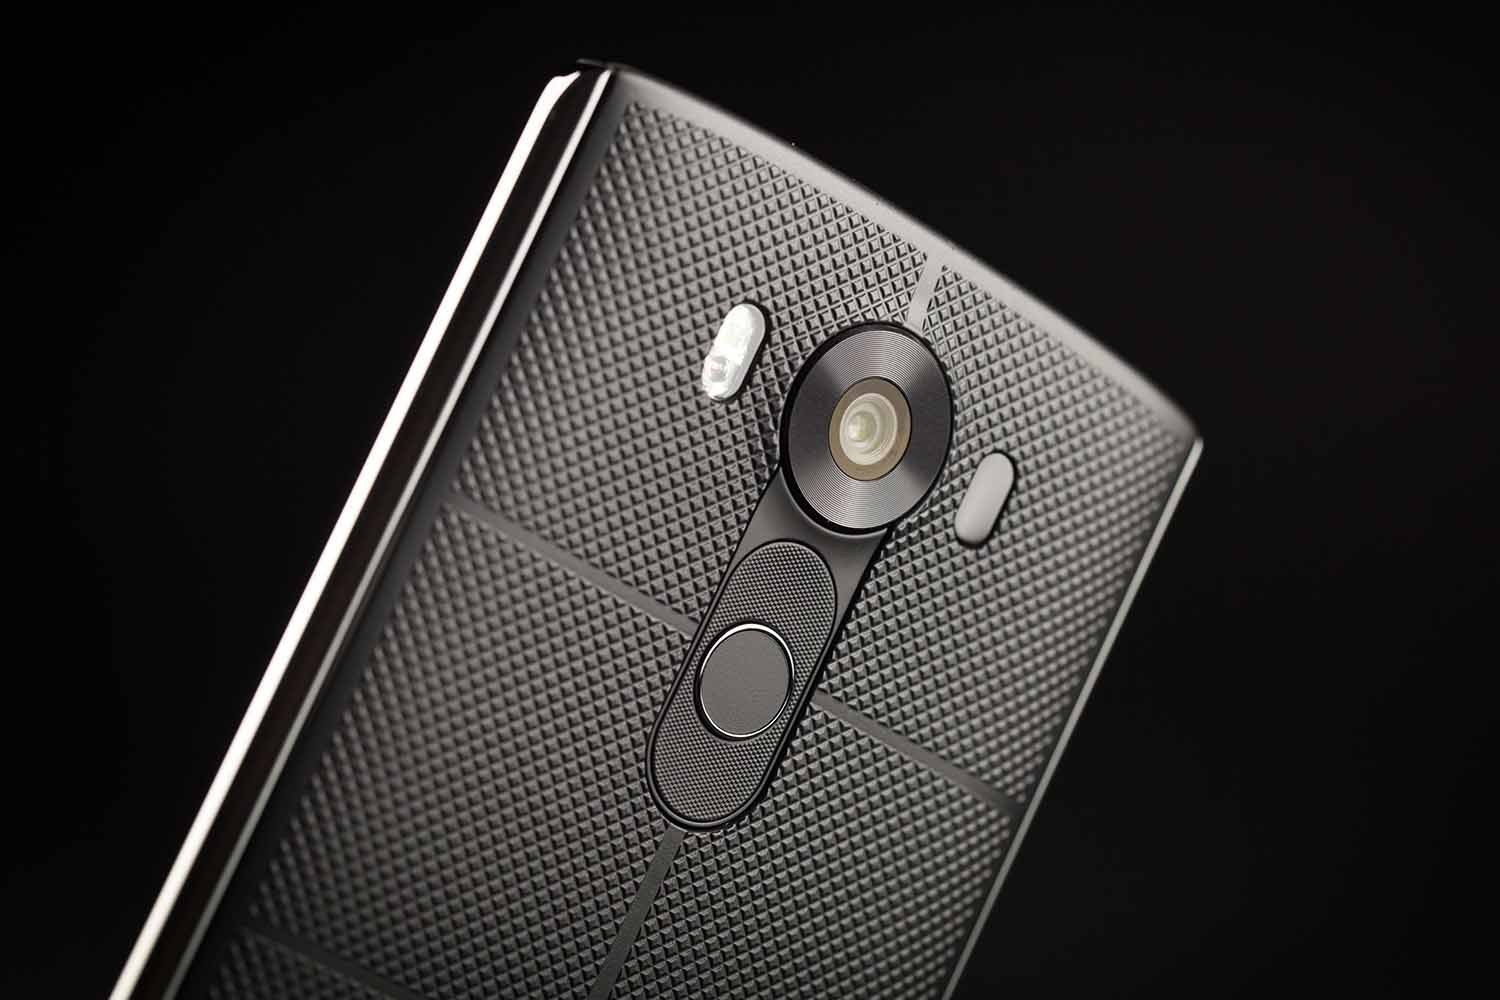 LG G6 announcement date during month of March